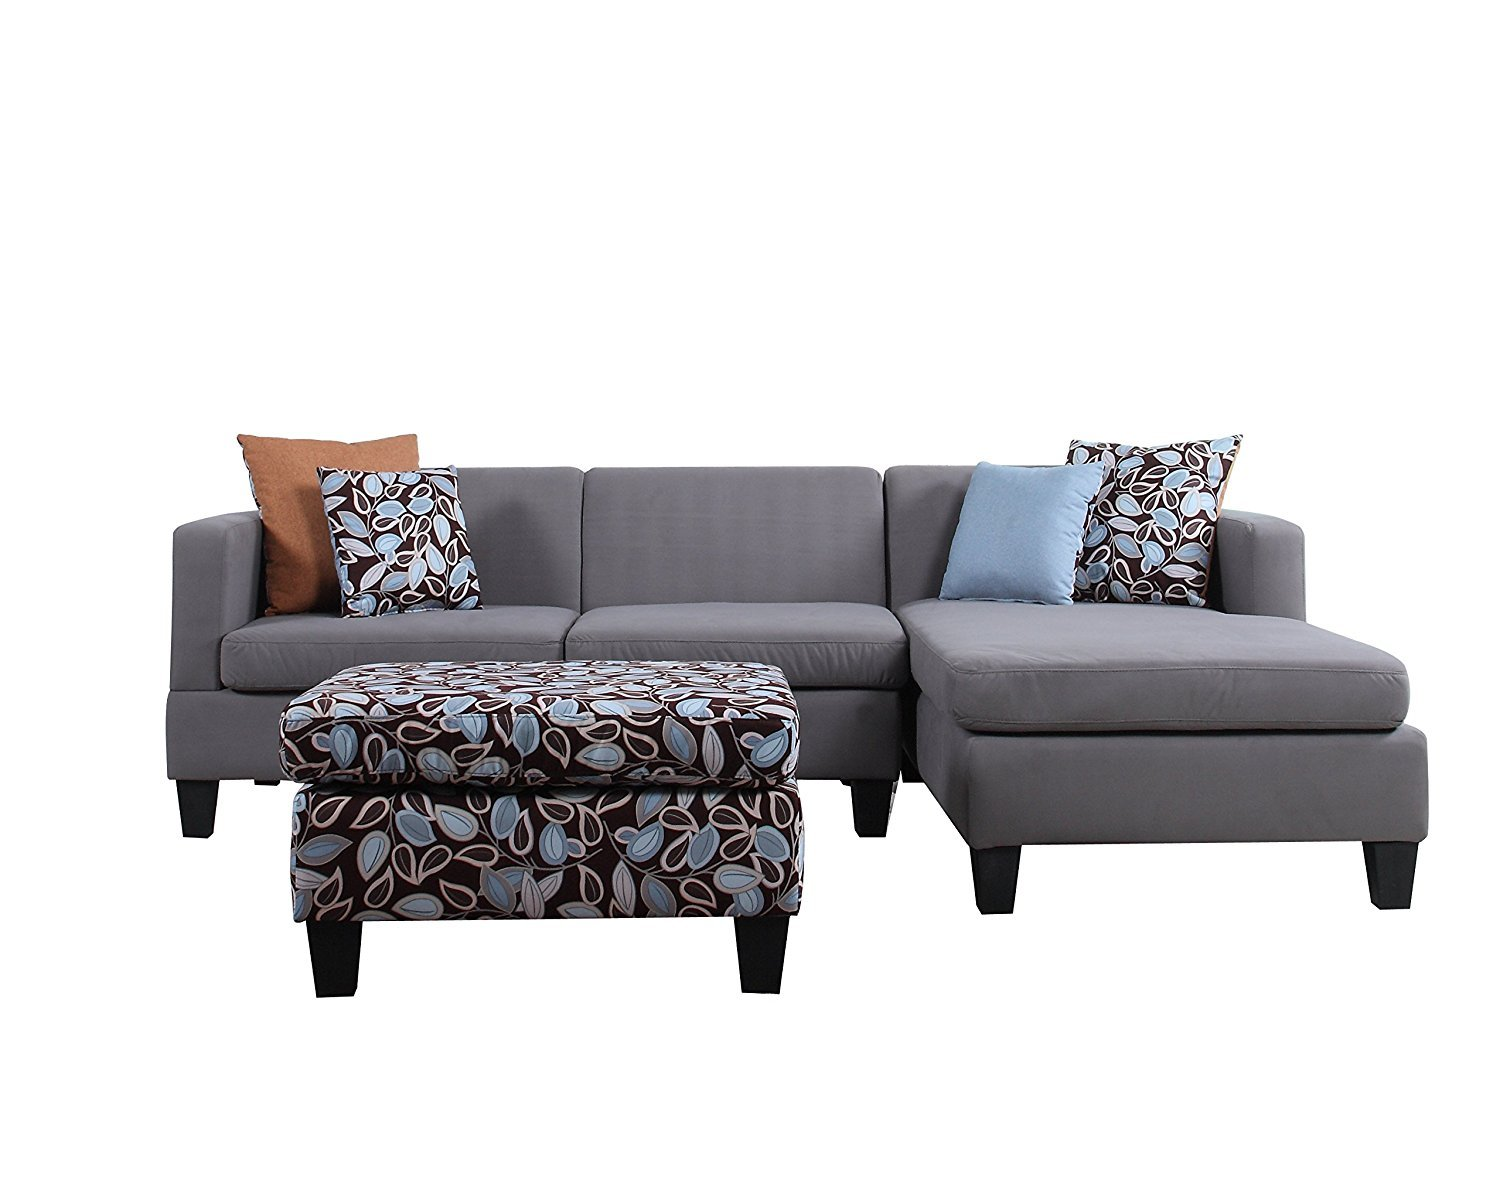 Small Sectional Sofa with Chaise  Home Furniture Design